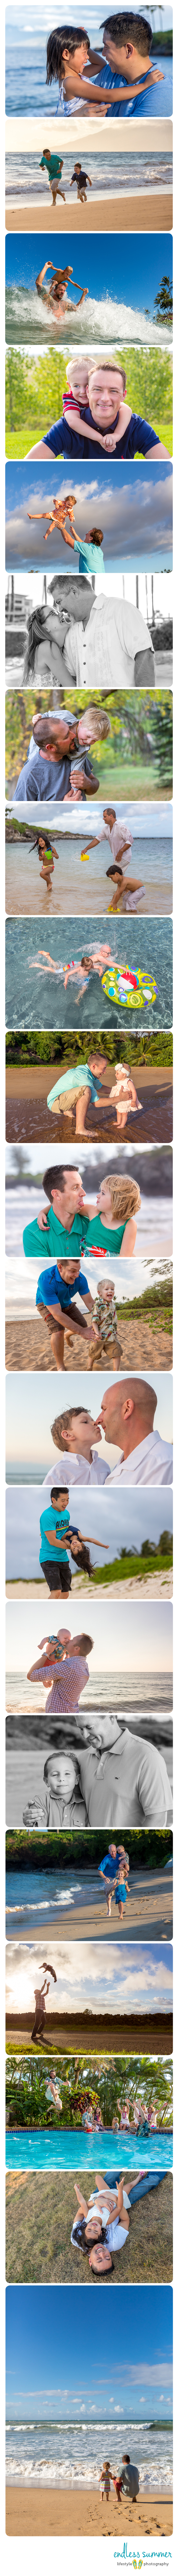 Maui_Journalistic_Family_Photography_Dads